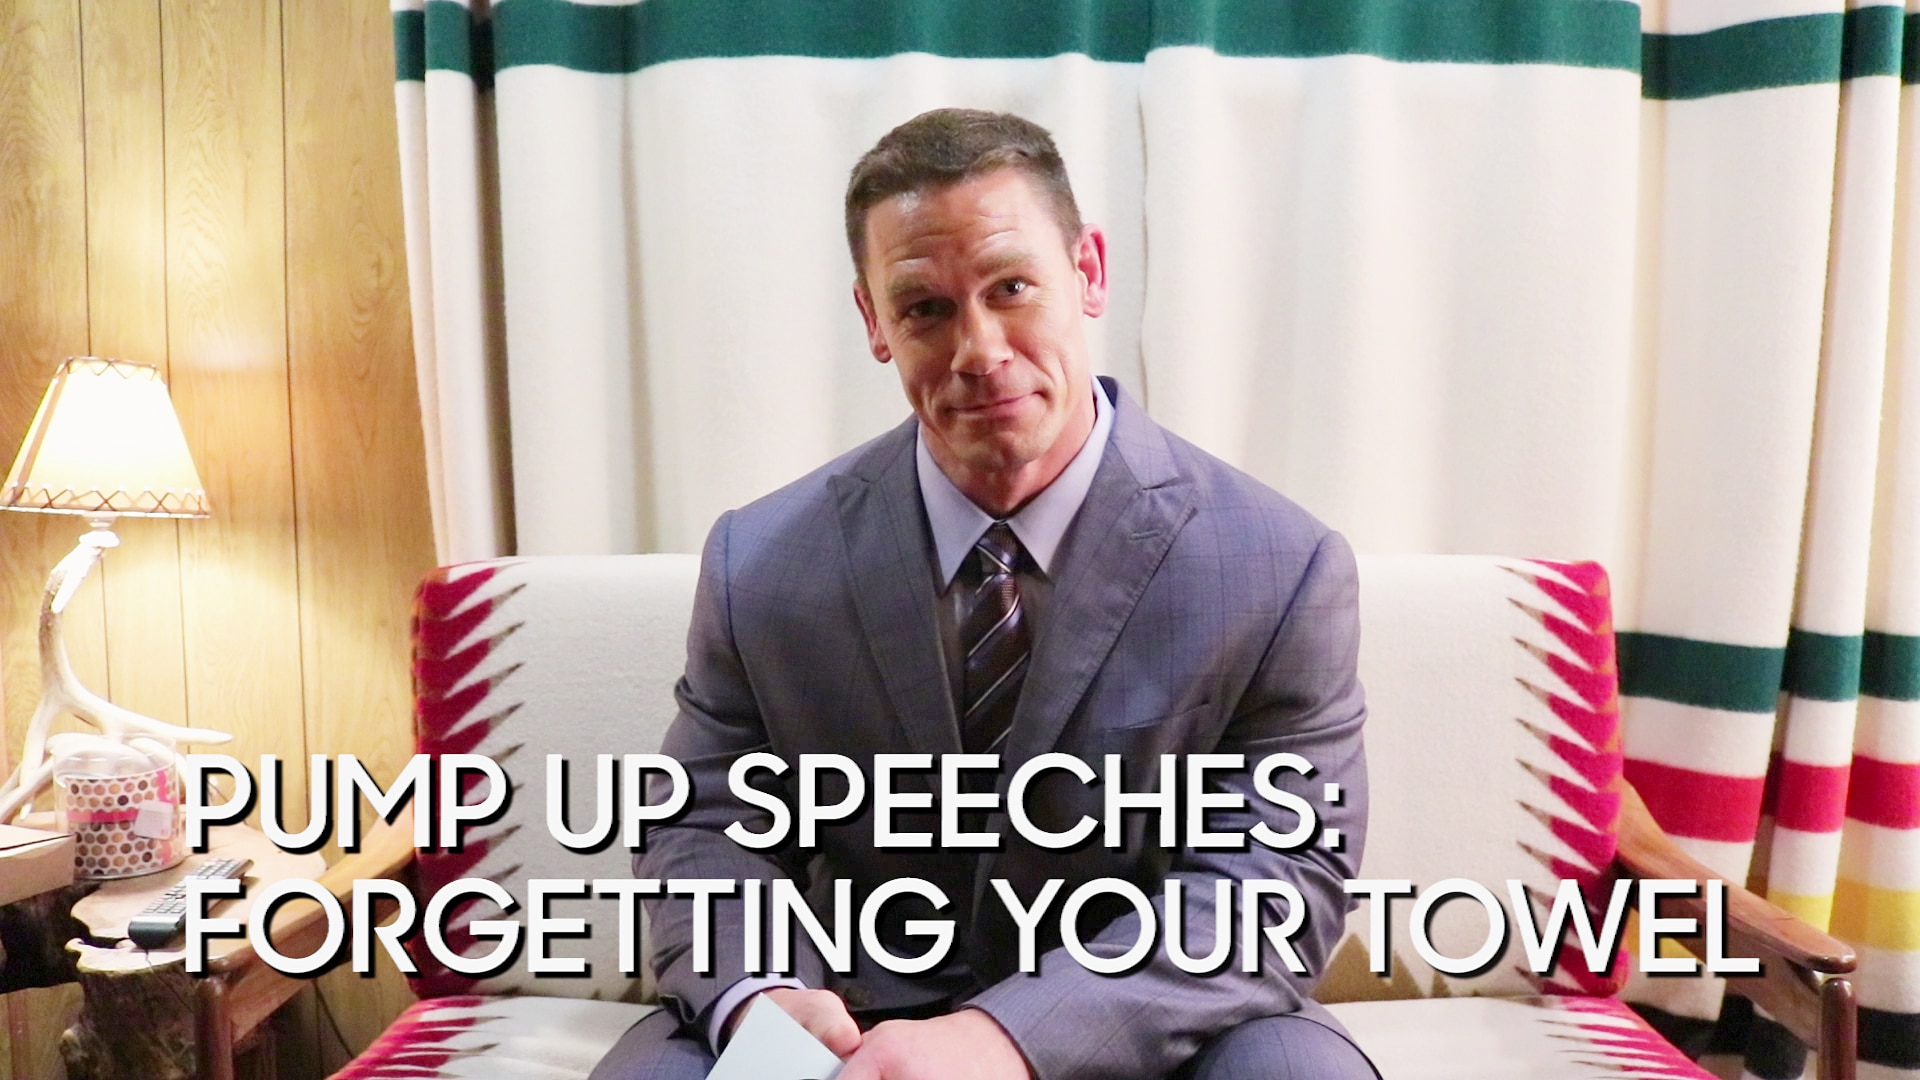 Pump Up Speeches: Forgetting Your Towel (with John Cena)